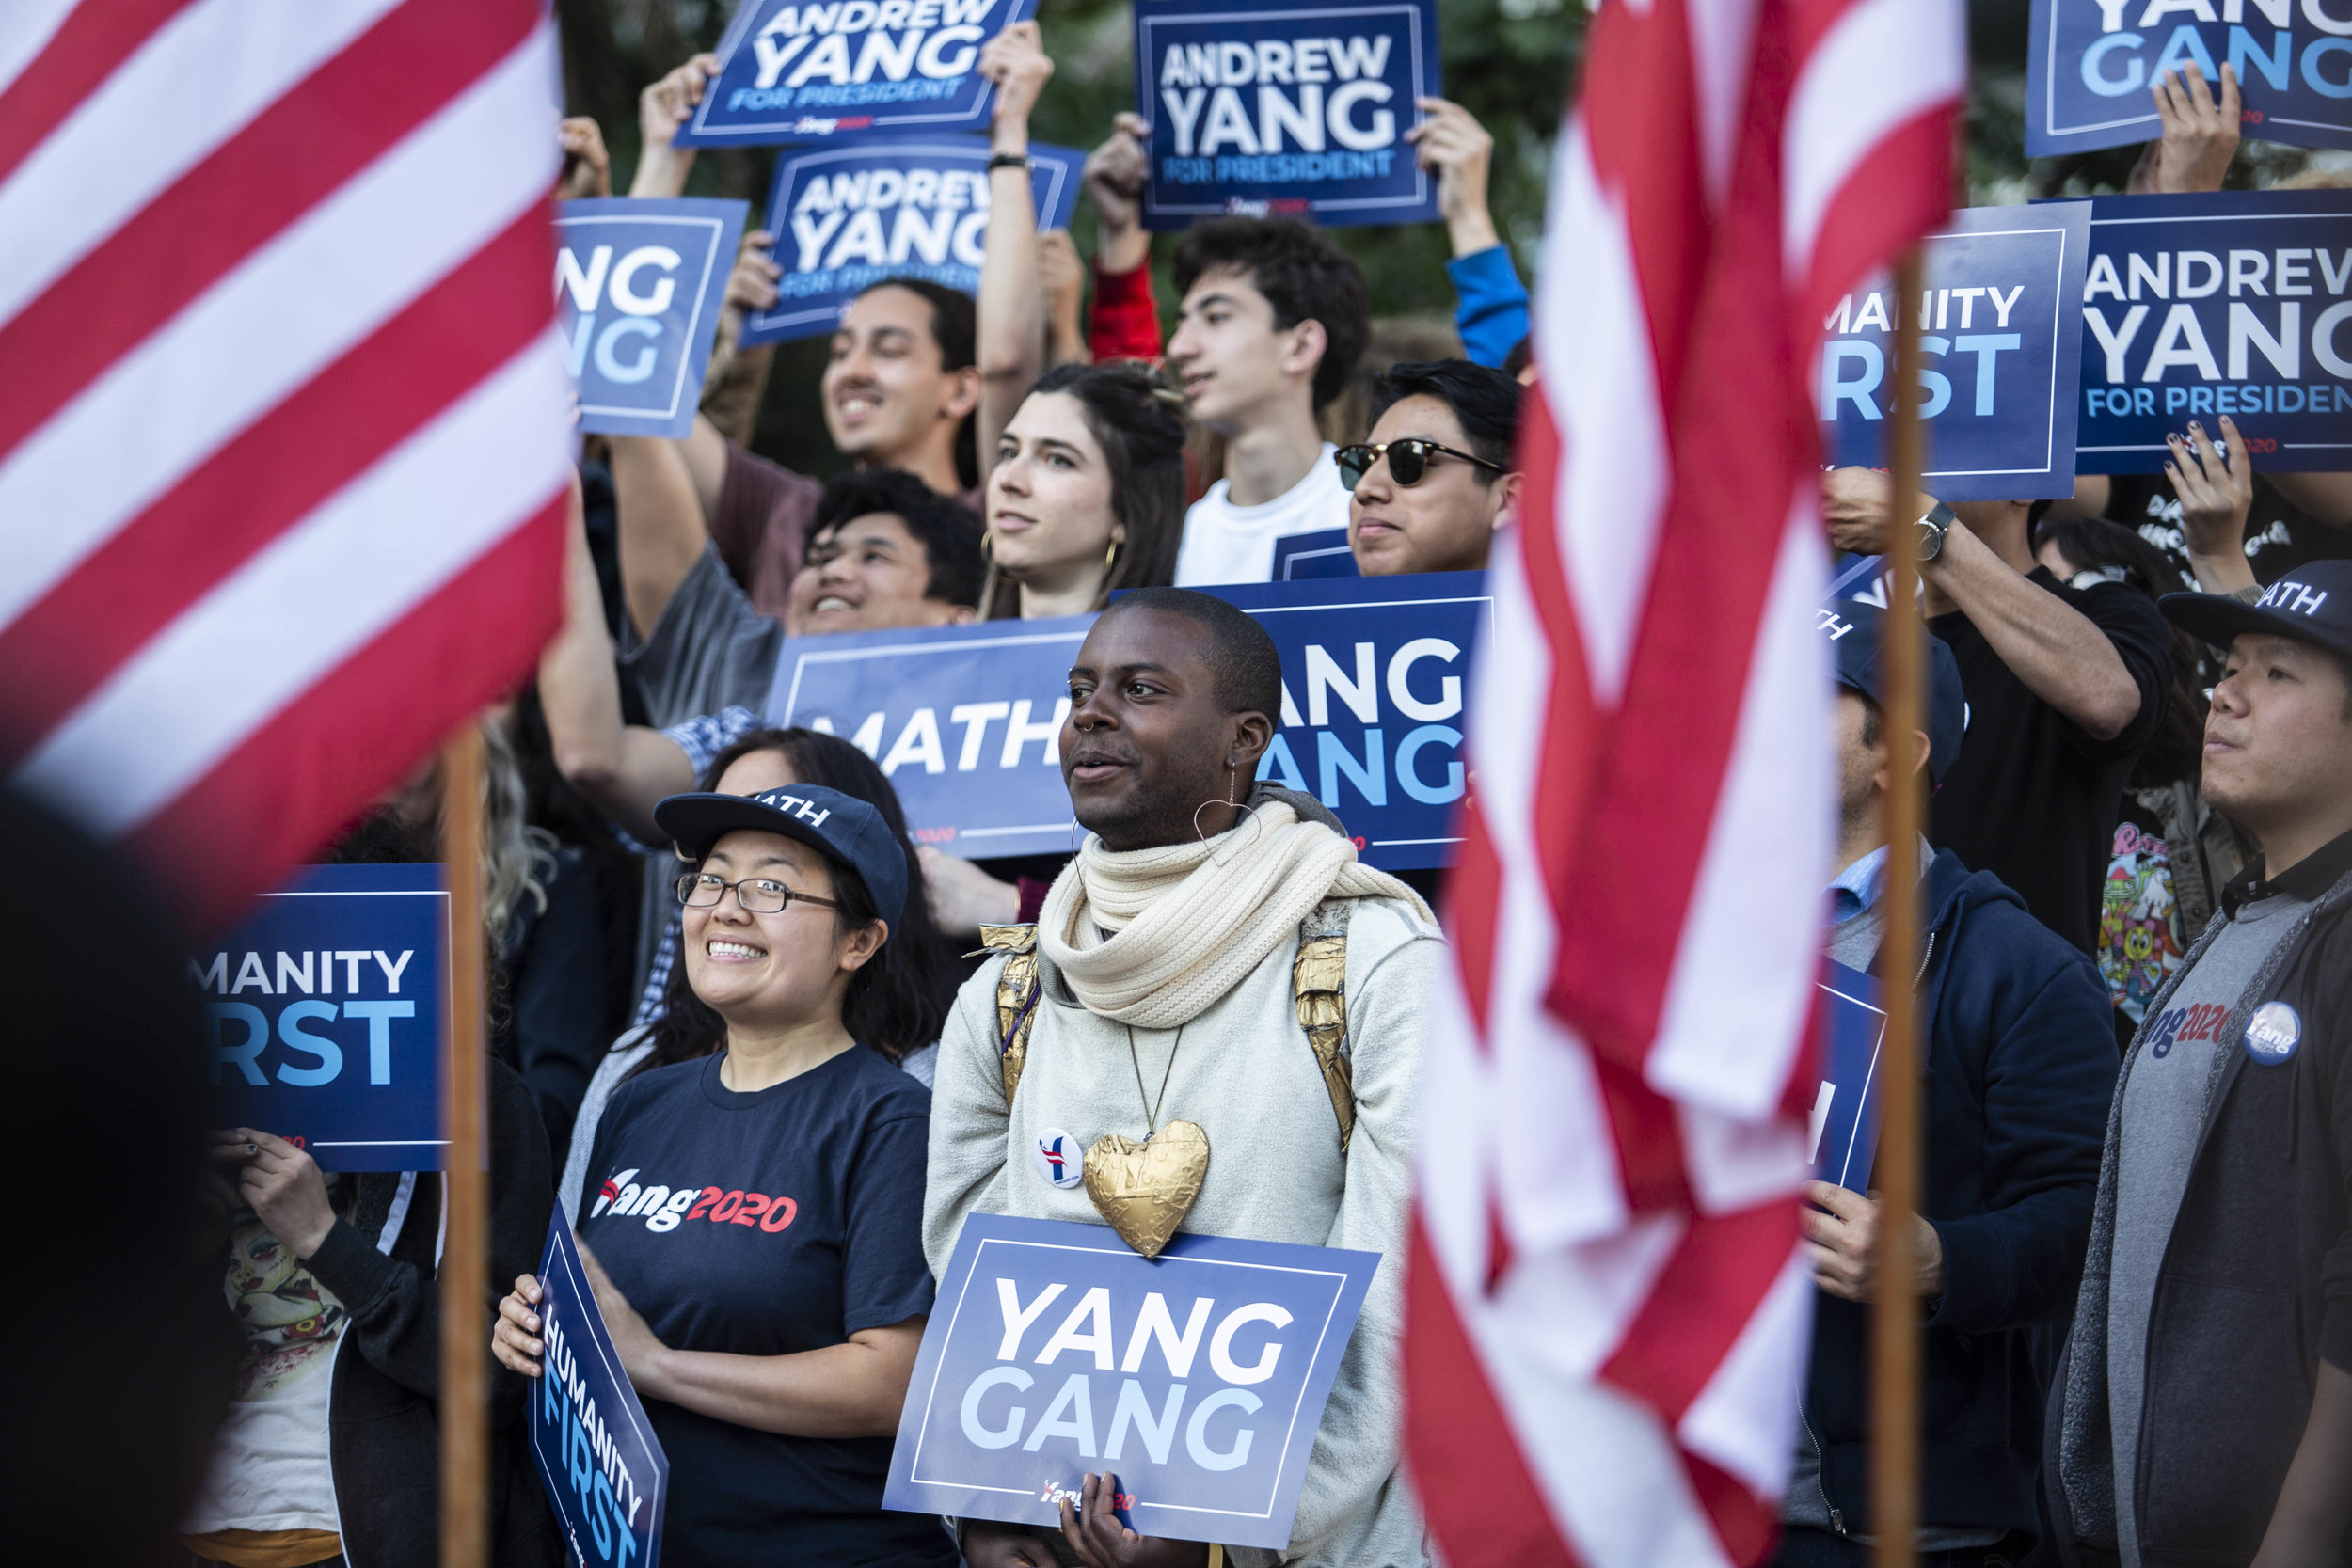 2020 Presidential Candidate Andrew Yang supporters holding signs during the Humanity First Tour in Los Angeles on Monday, April 22, 2019 at Pershing Square Park in Los Angeles, Calif. (Yasamin Jafari-Tehrani/ The Corsair)